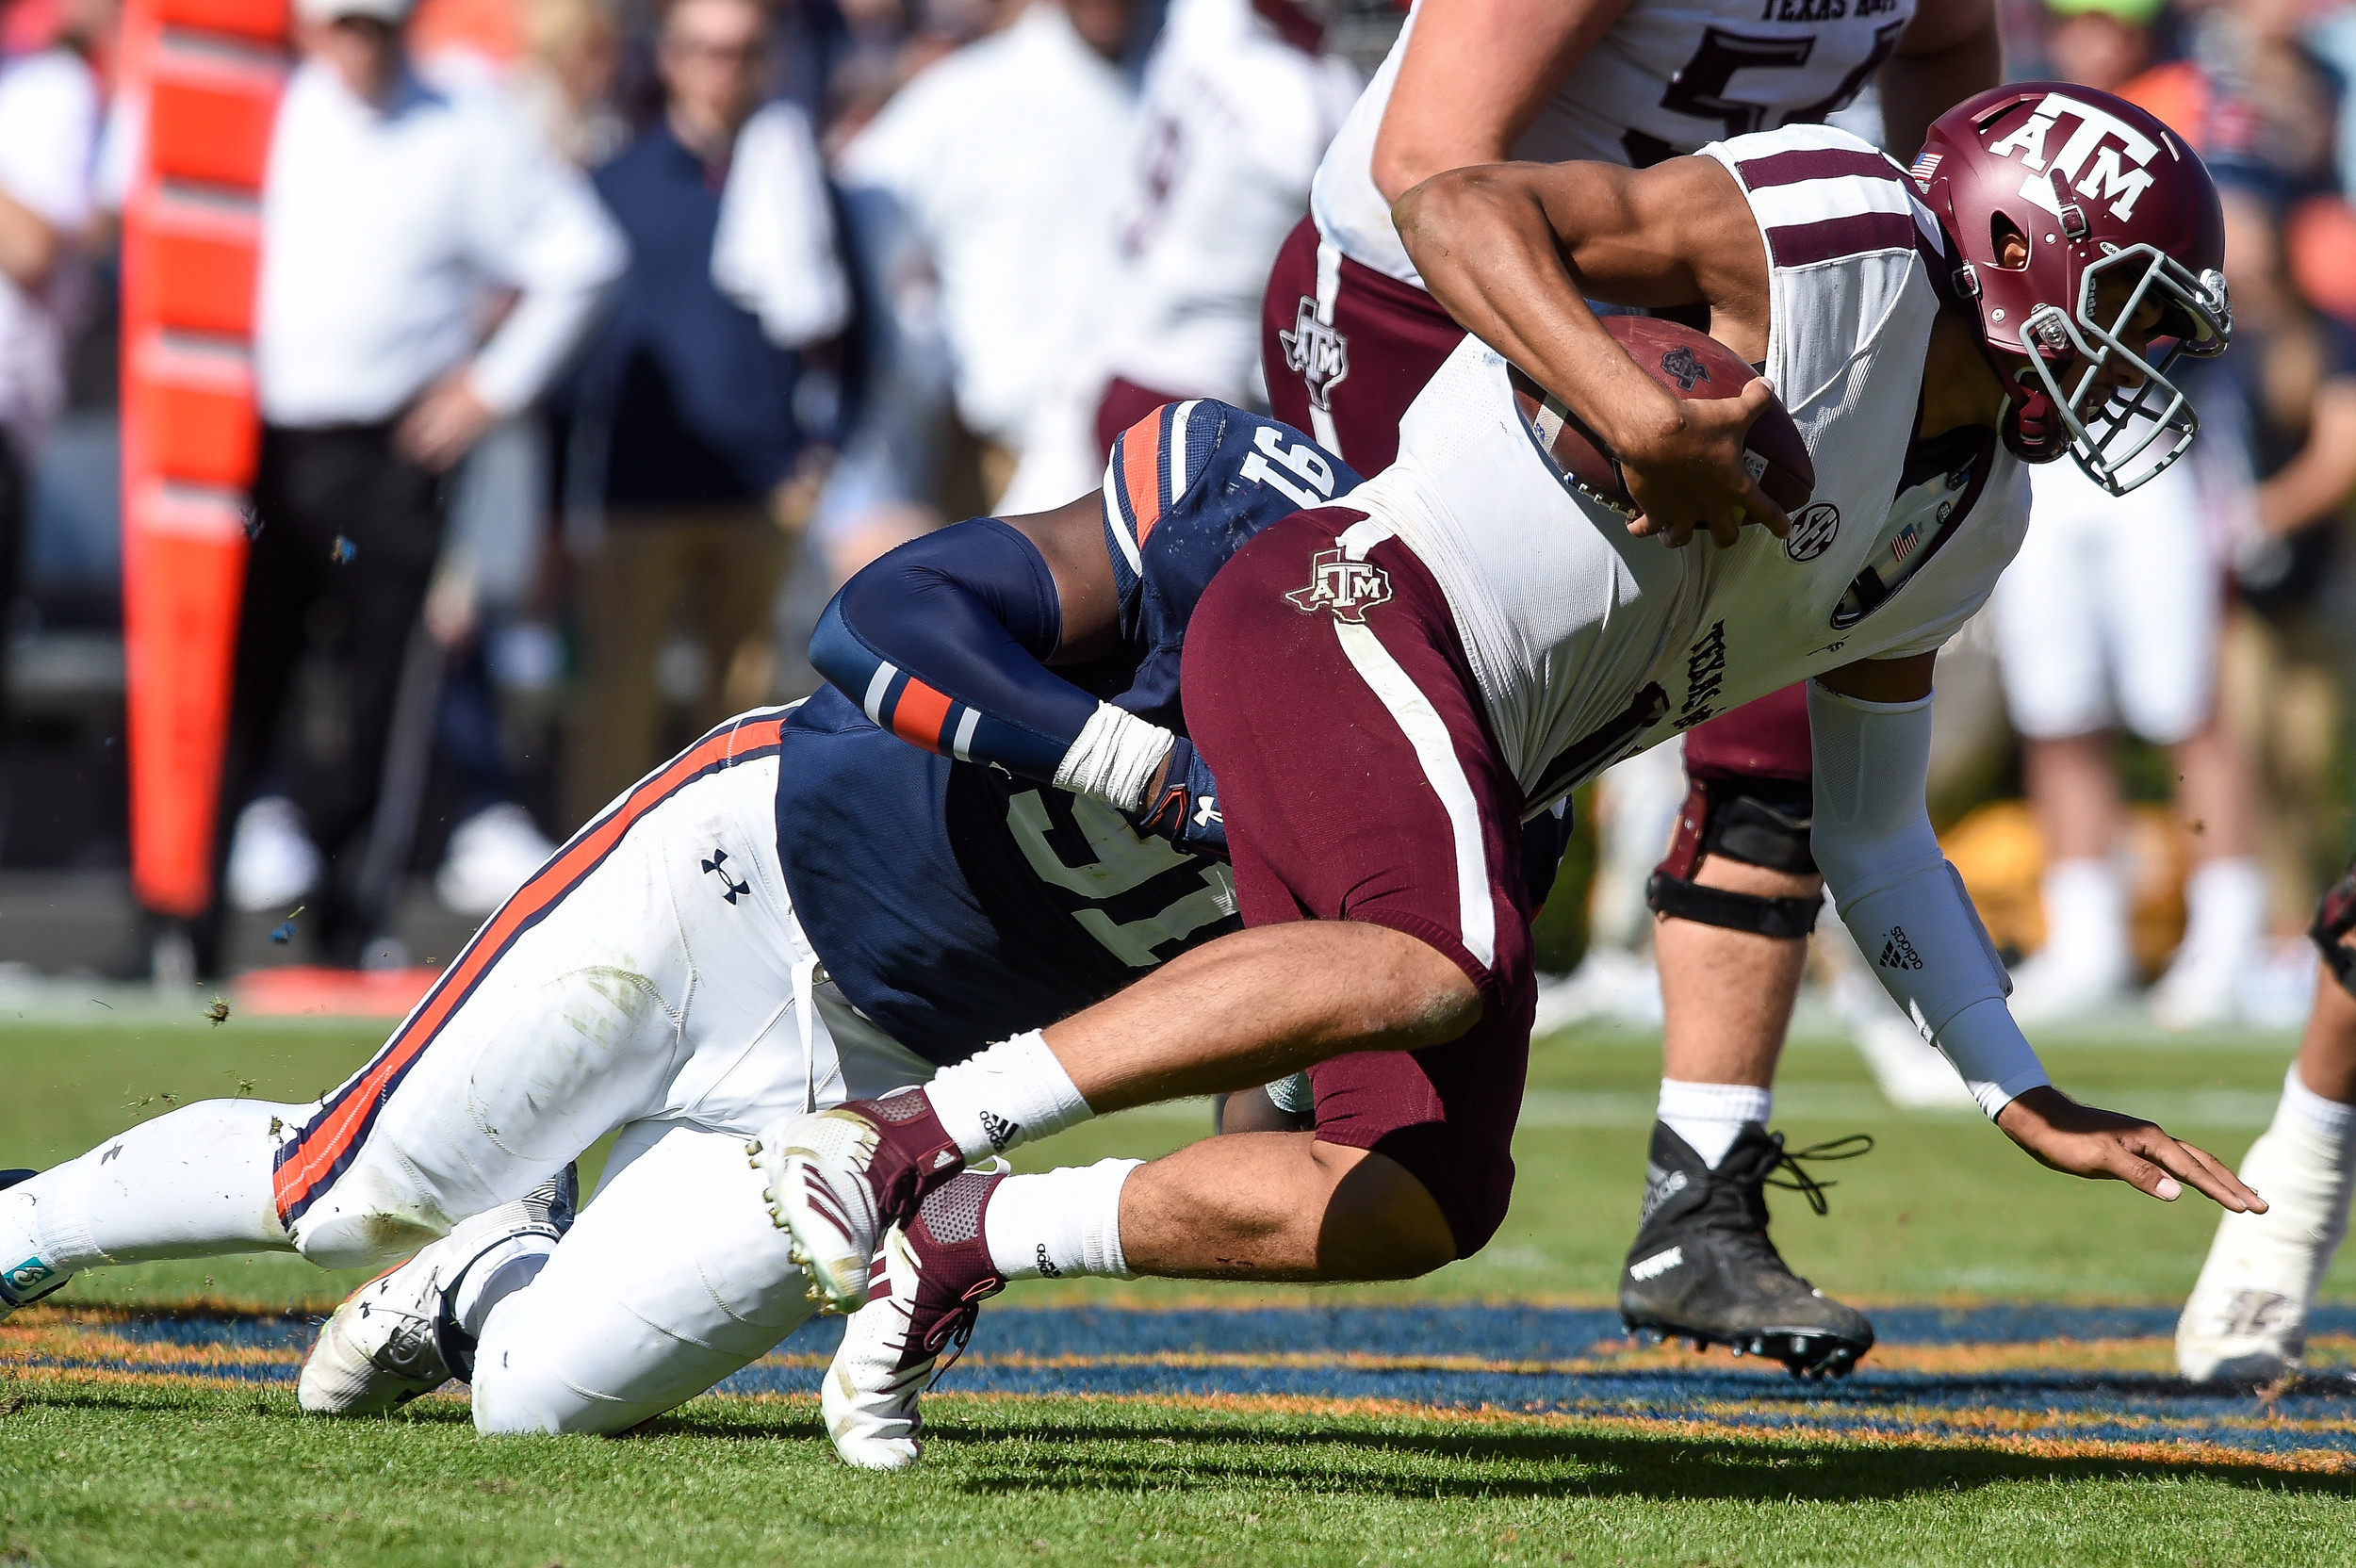 Auburn Tigers defensive lineman Nick Coe (91) tackles Texas A&M Aggies quarterback Kellen Mond (11) during the second half of an NCAA football game between the Auburn Tigers and Texas A&M Aggies Saturday, November 3, 2018, at Jordan-Hare Stadium in Auburn, Ala. (Photo by Jeff Johnsey)